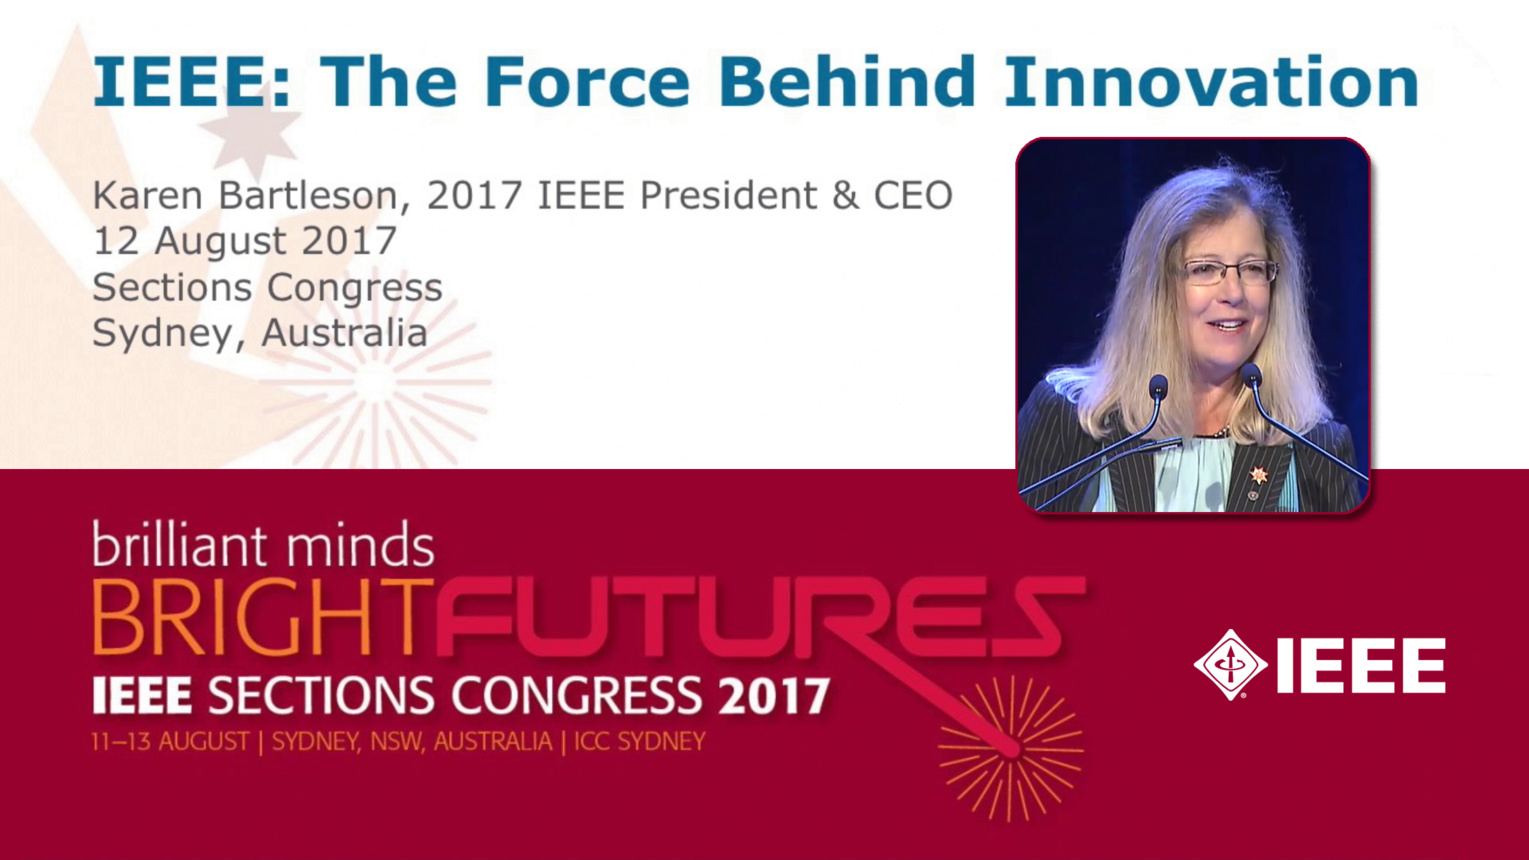 IEEE: The Force Behind Innovation - Karen Bartleson - Opening Ceremony: Sections Congress 2017